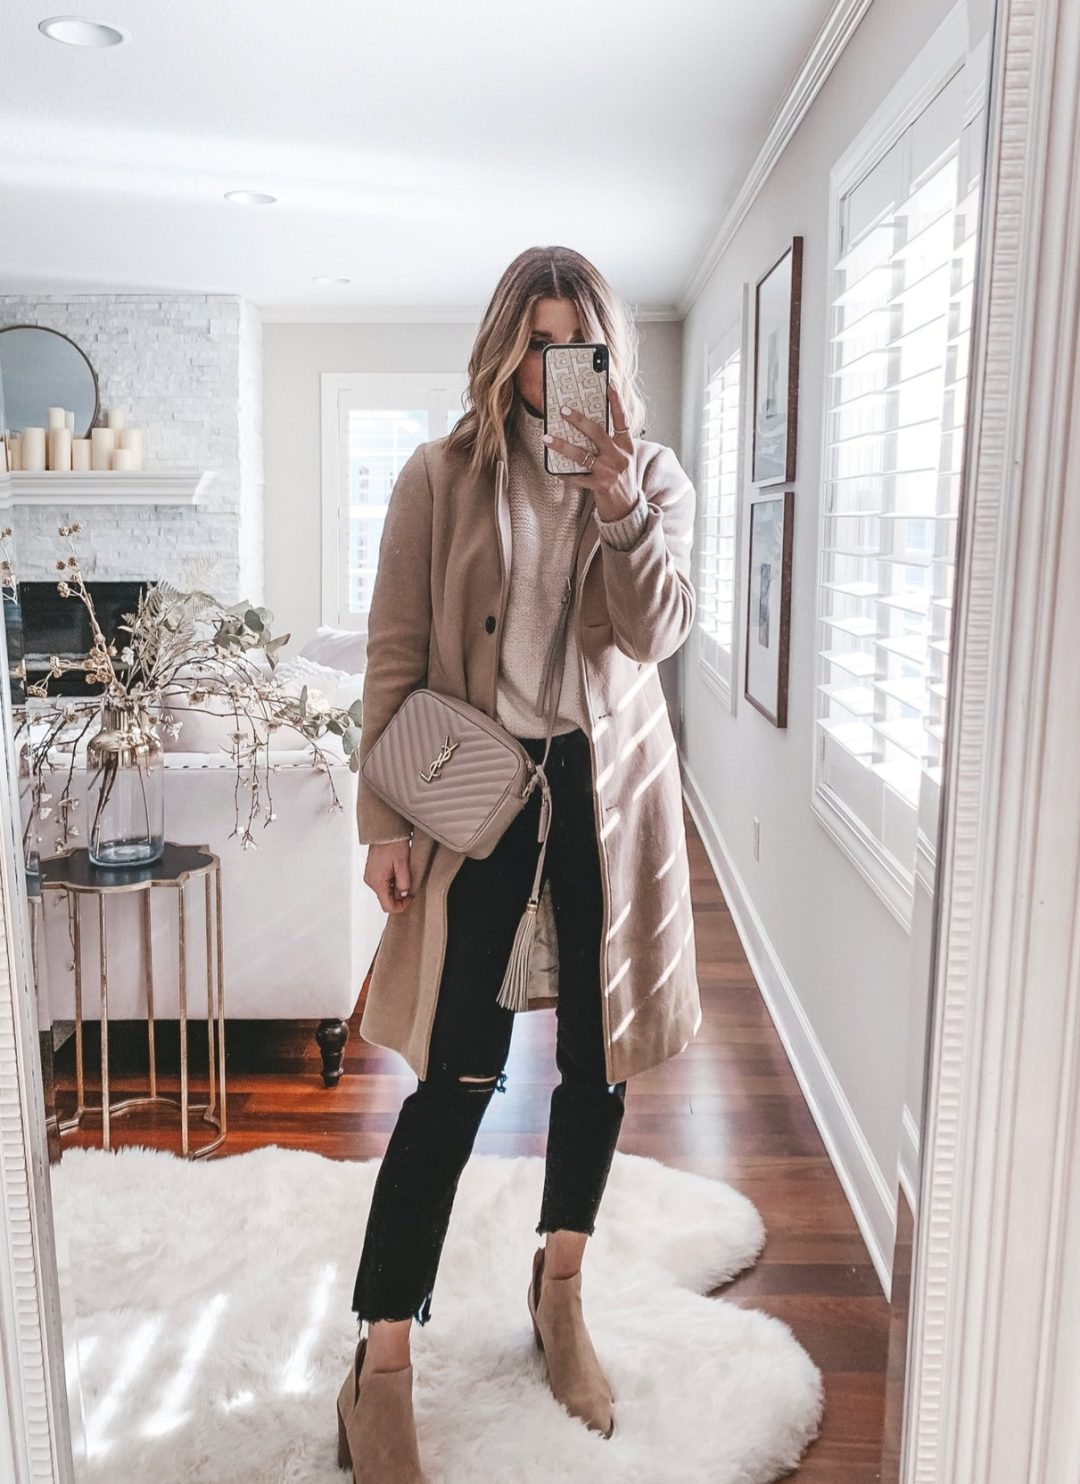 Black jeans outfit for winter with camel coat